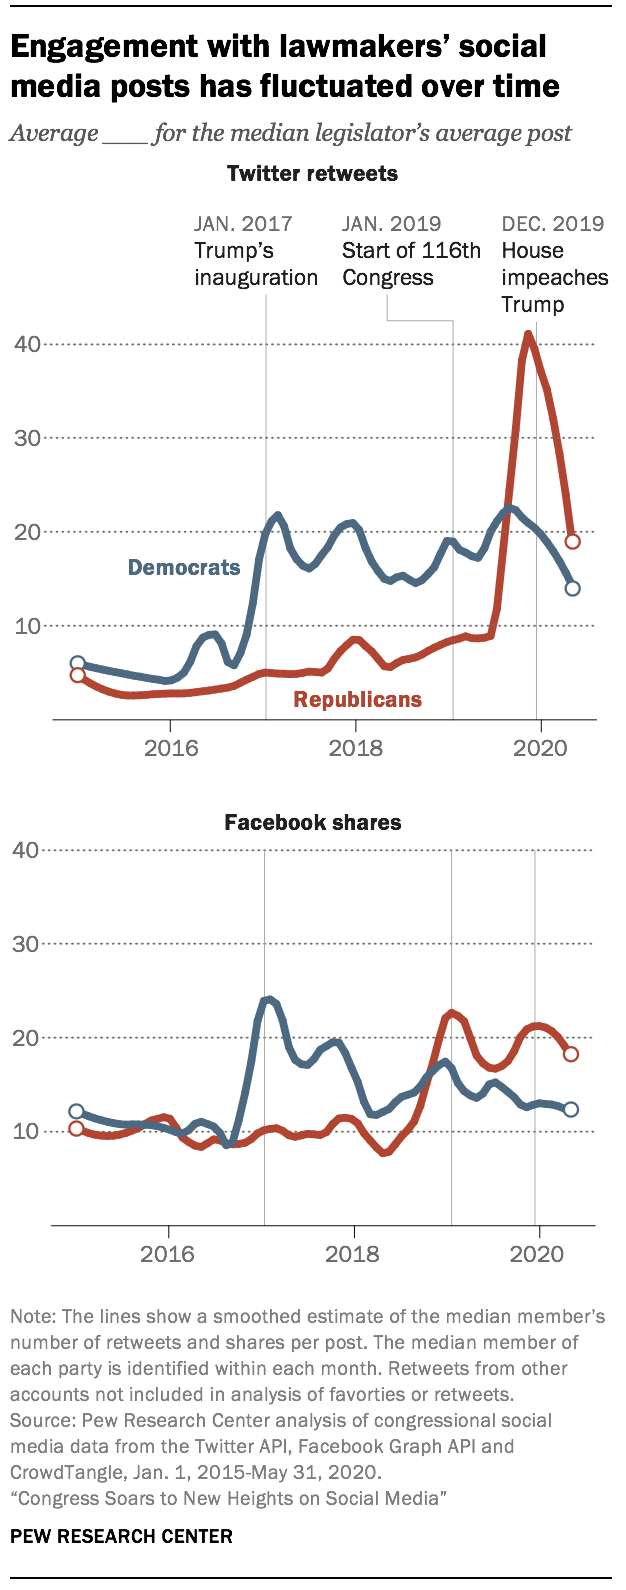 Engagement with lawmakers' social media posts has fluctuated over time